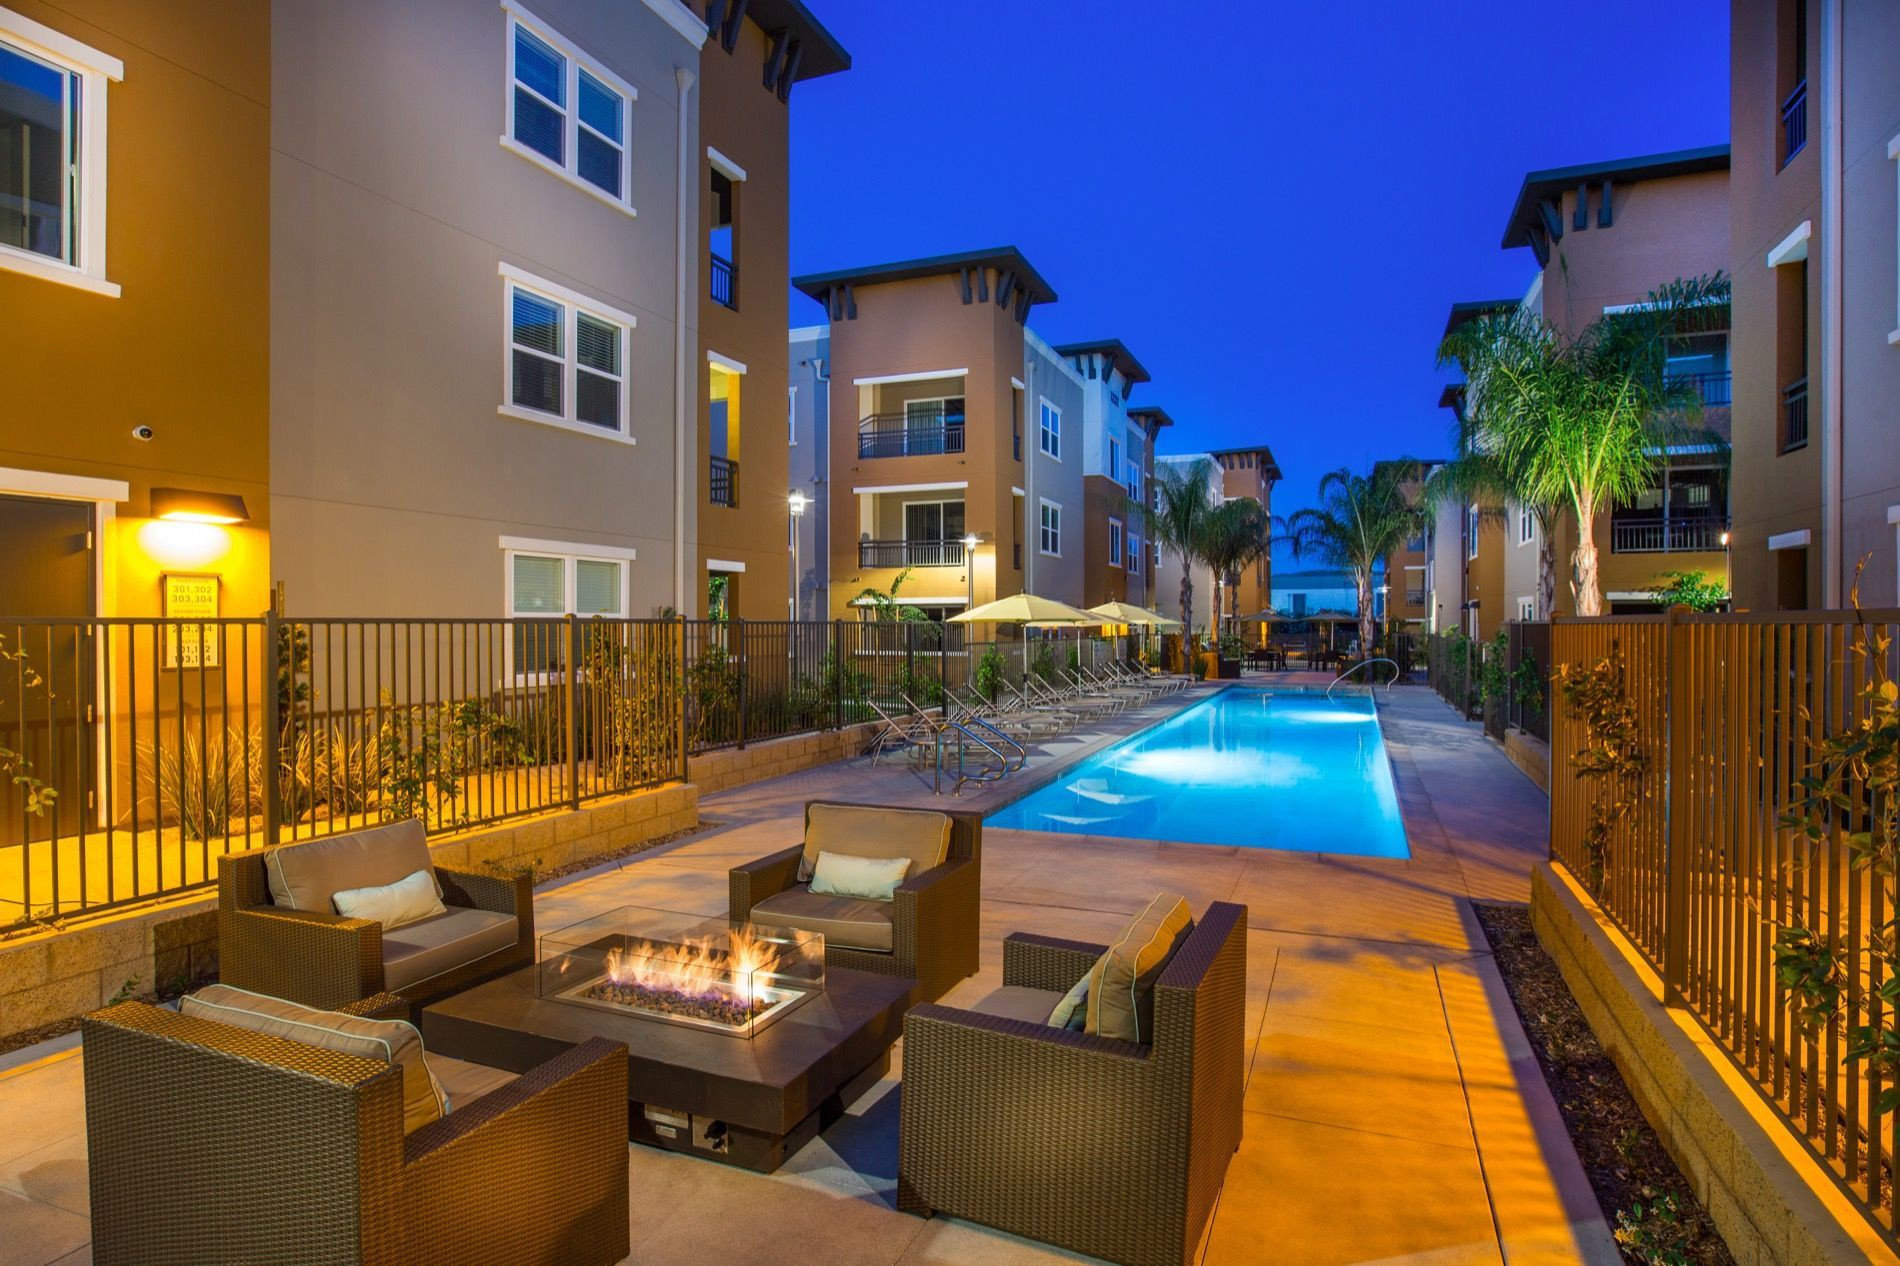 Apartments Near Palomar Palomar Station for Palomar College Students in San Marcos, CA